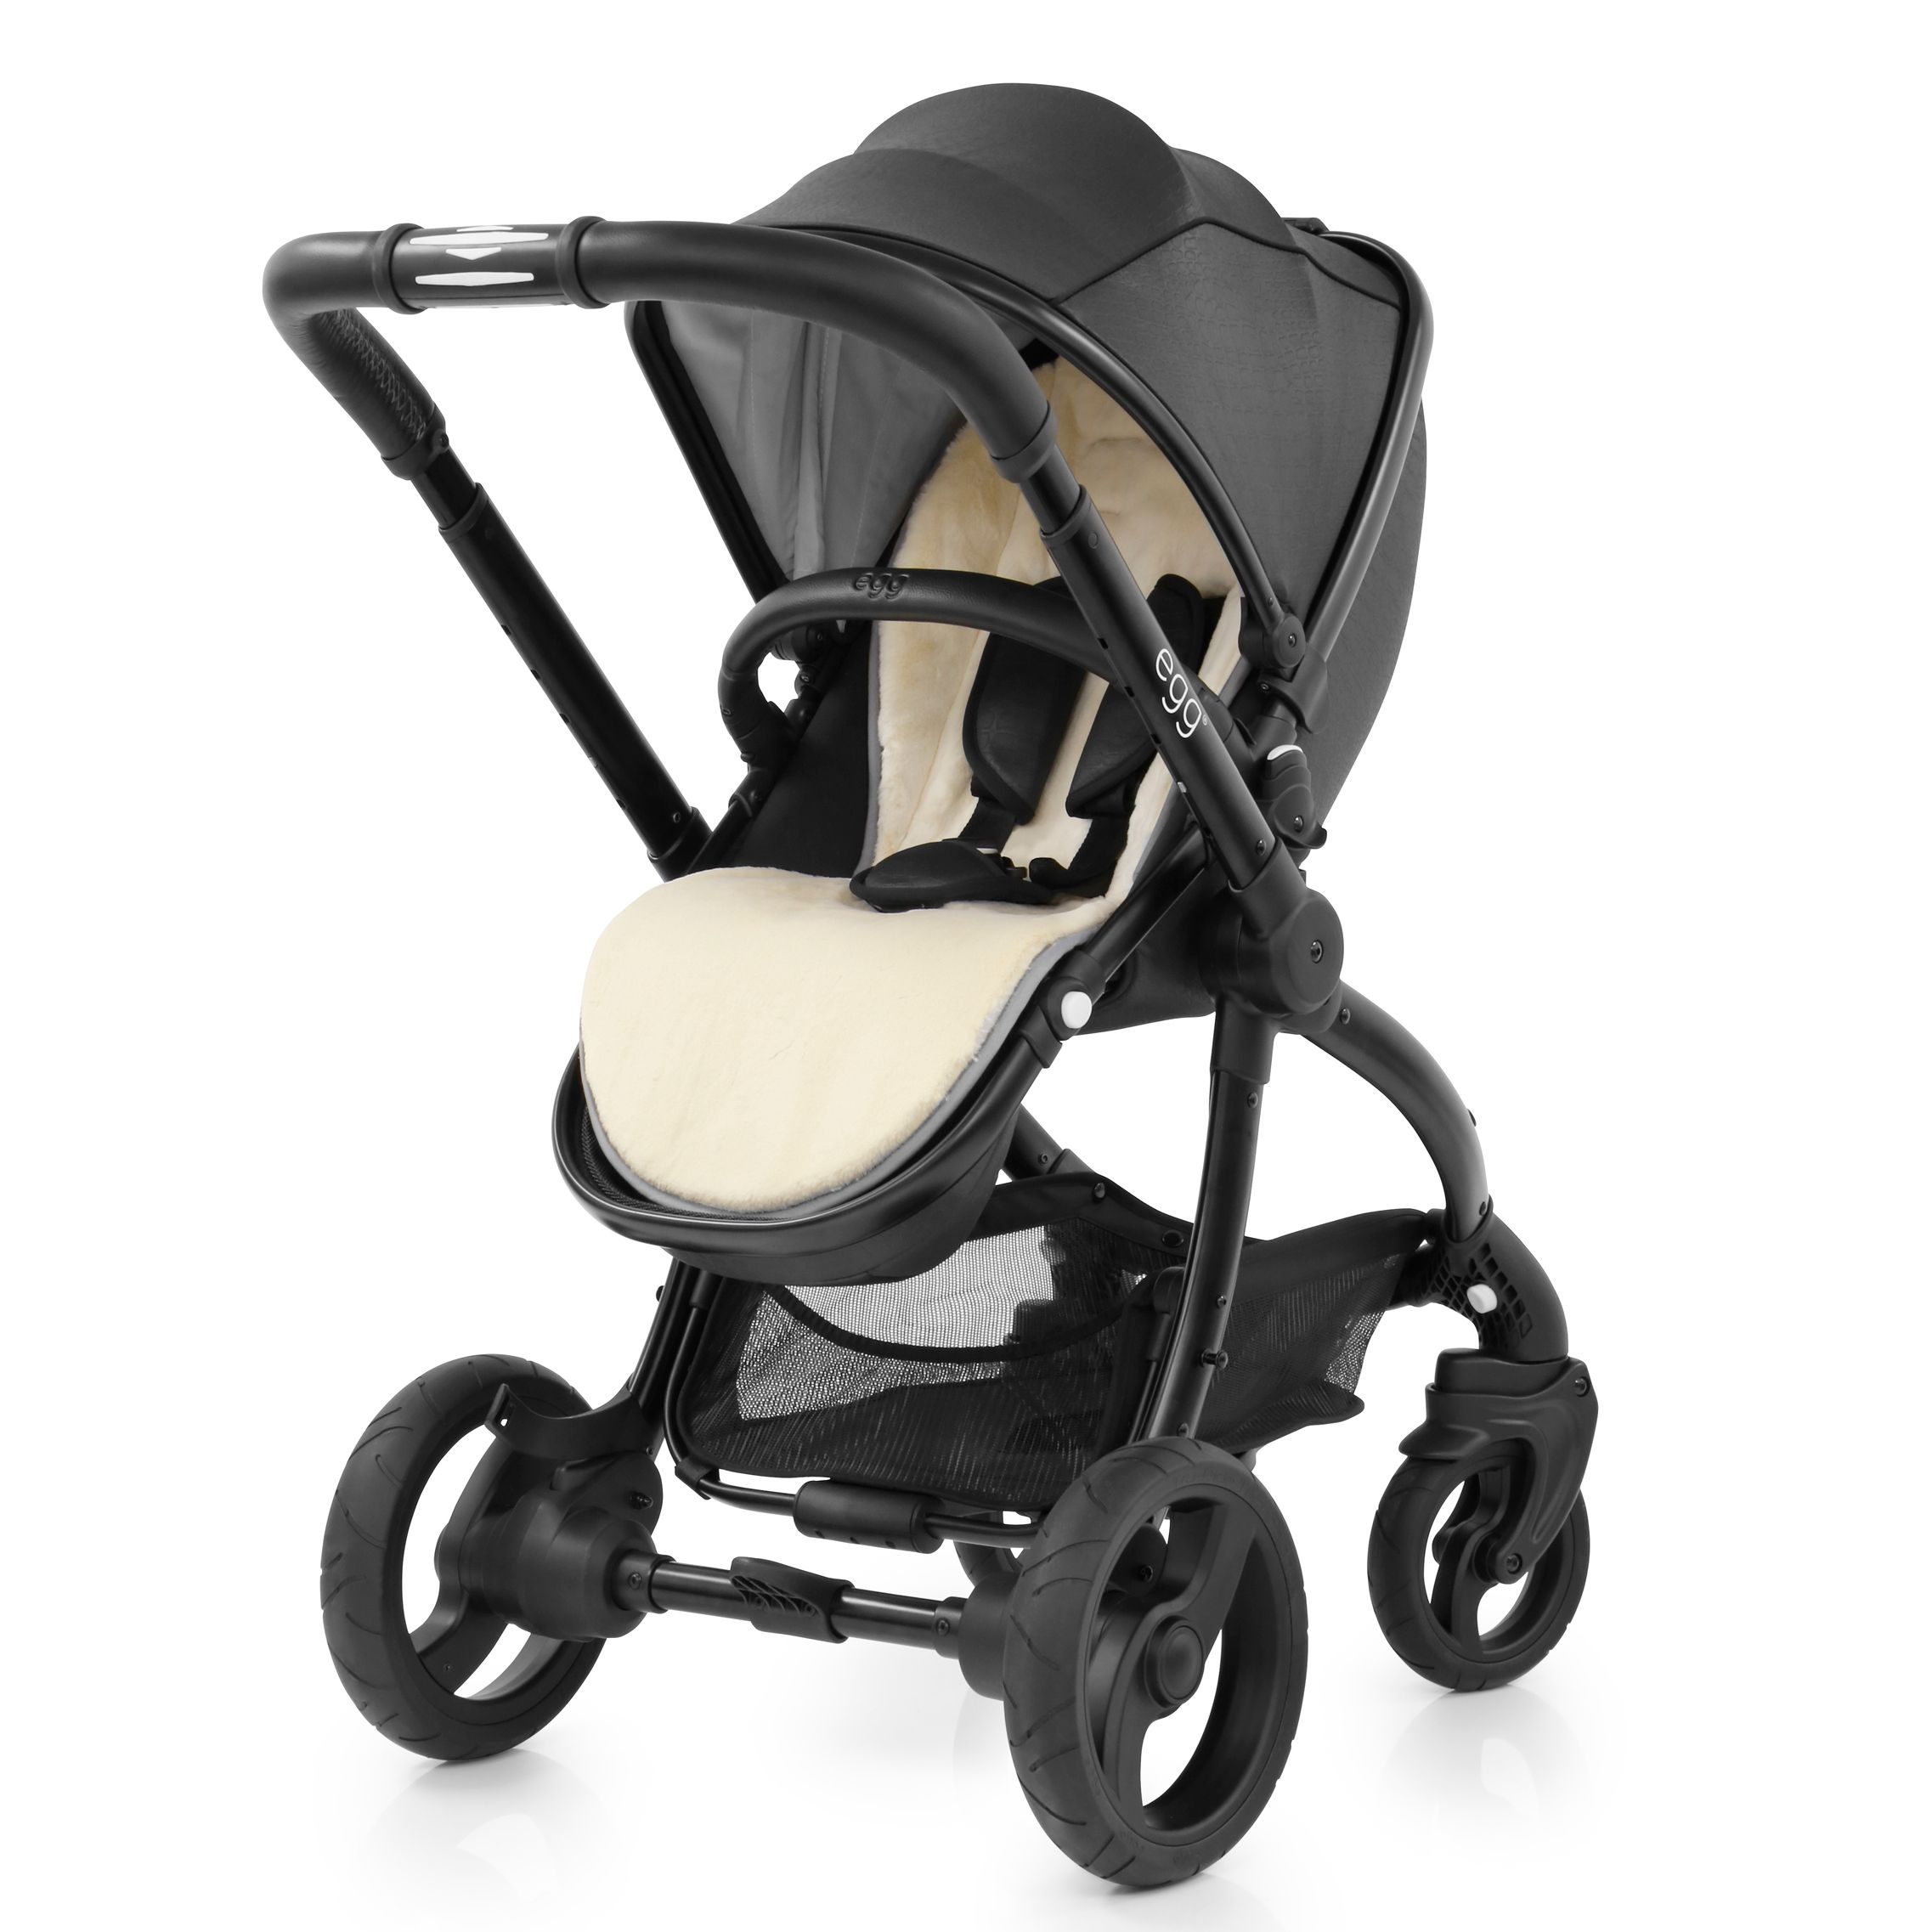 Egg Pram Parasol John Lewis Egg Special Edition Stroller Base Seat Unit With Changing